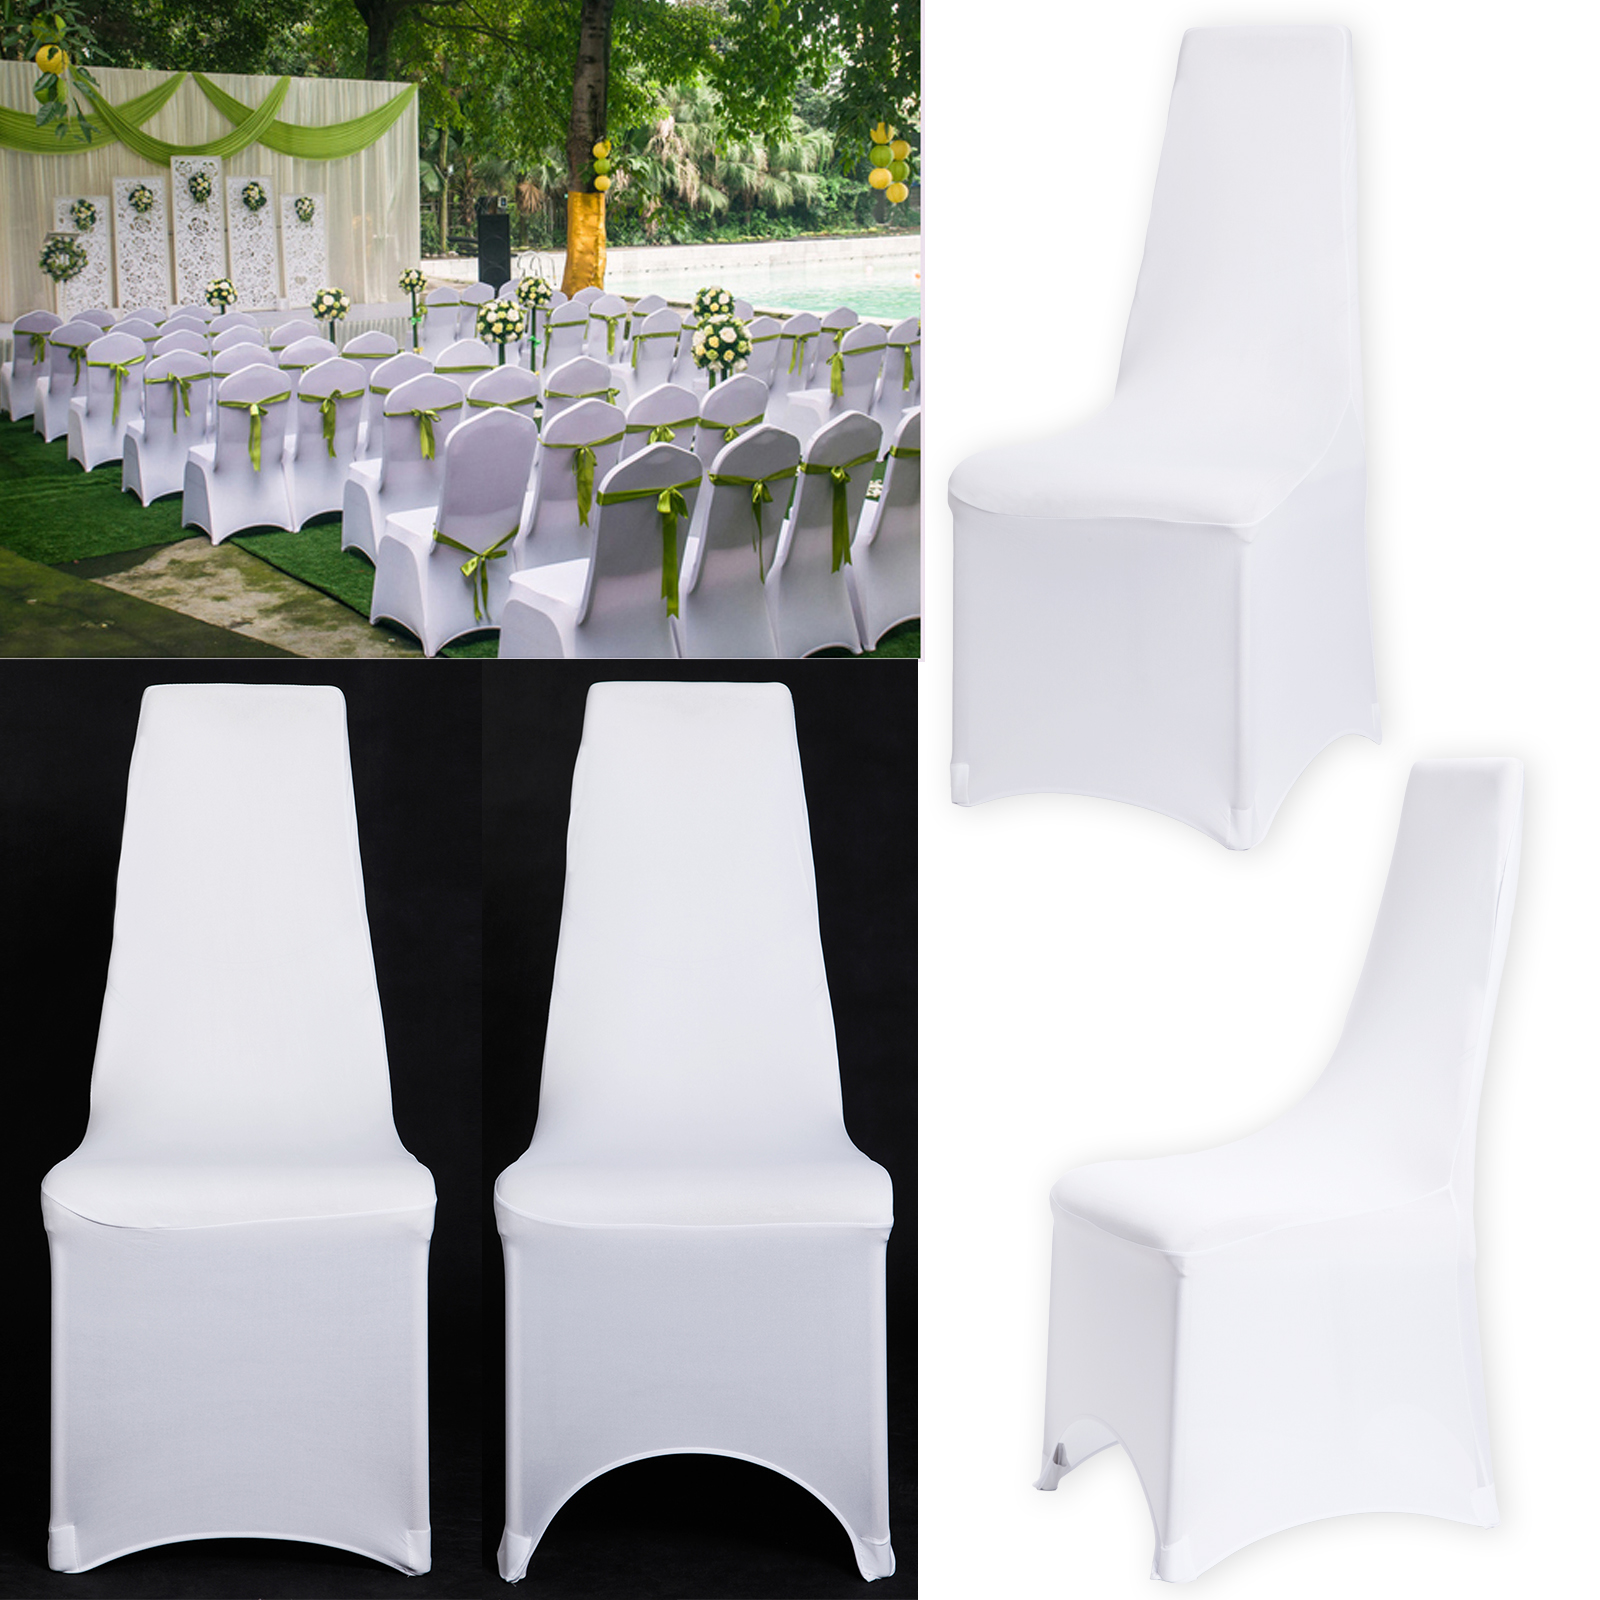 stretch dining chair covers uk wheelchair rugby pack of removable slipcovers lycra spandex